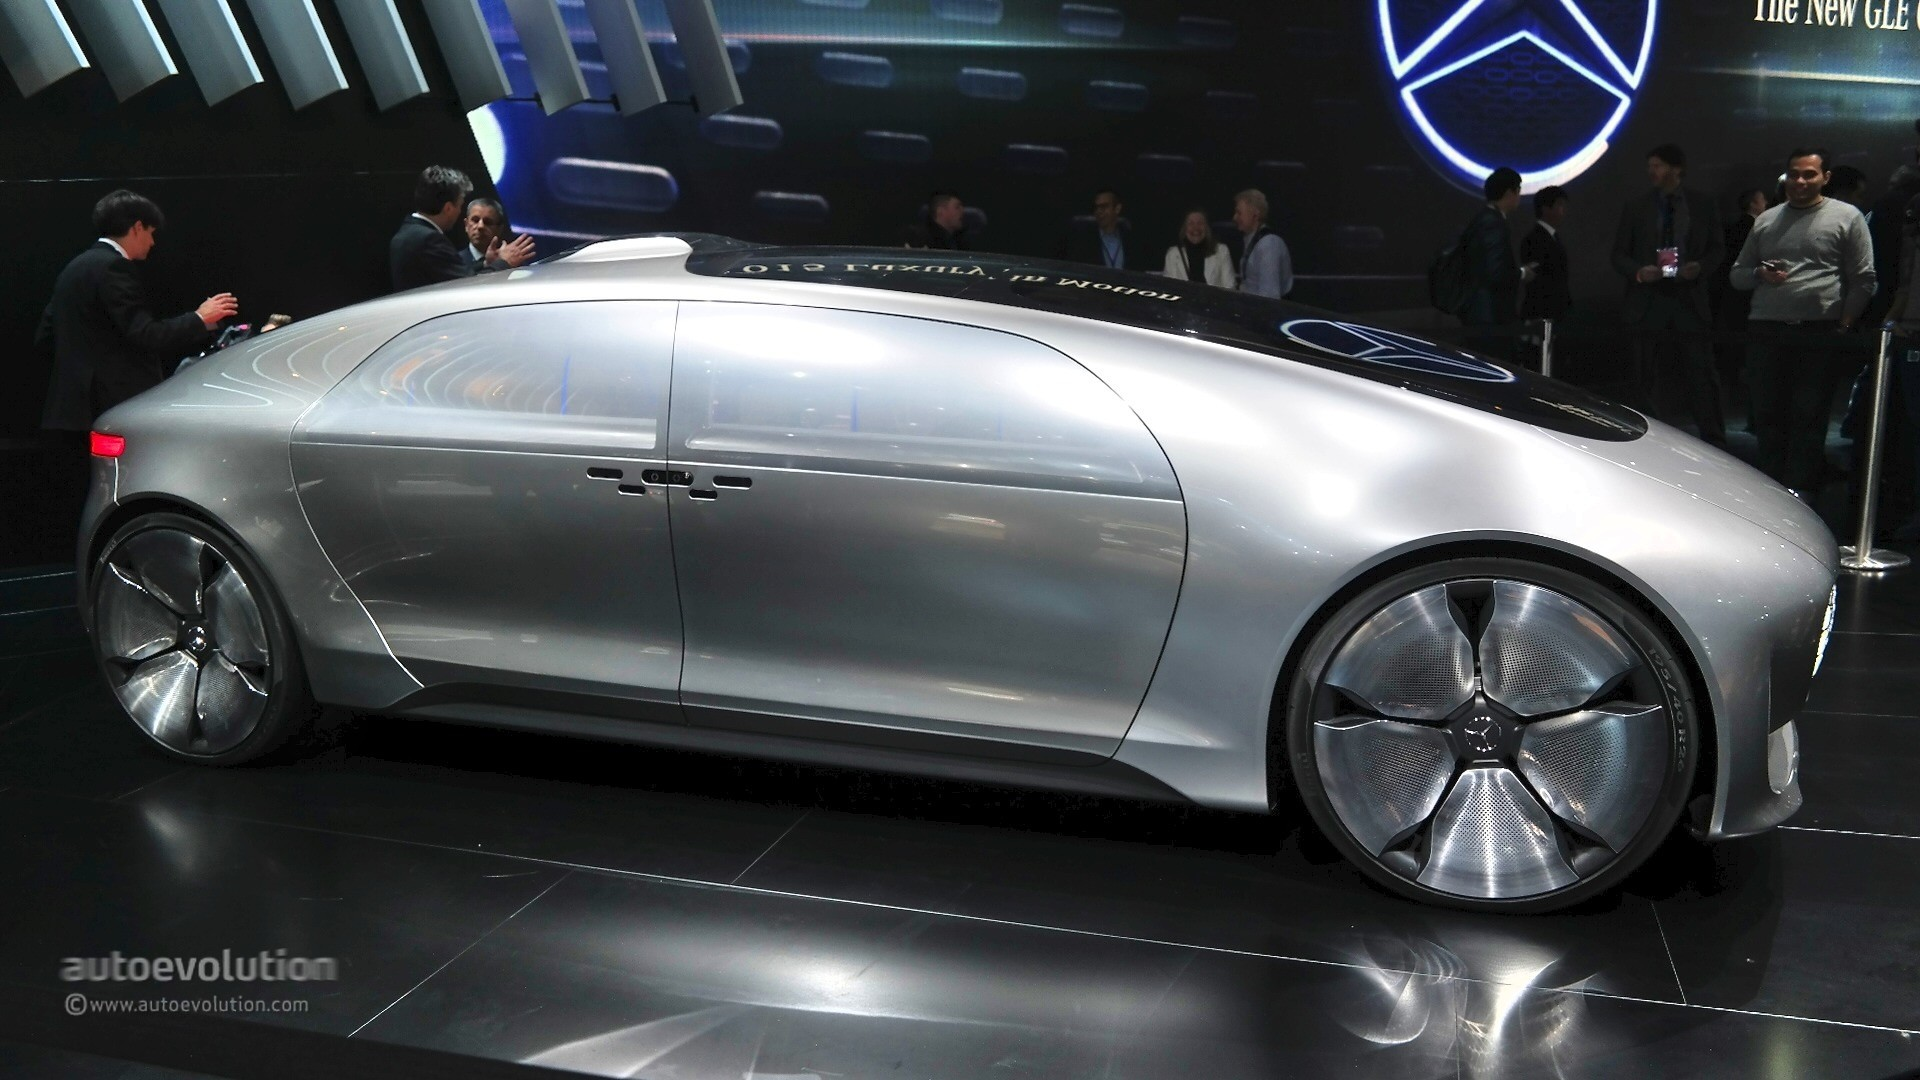 Mercedes benz f 015 concept previews the future at 2015 for Mercedes benz f 015